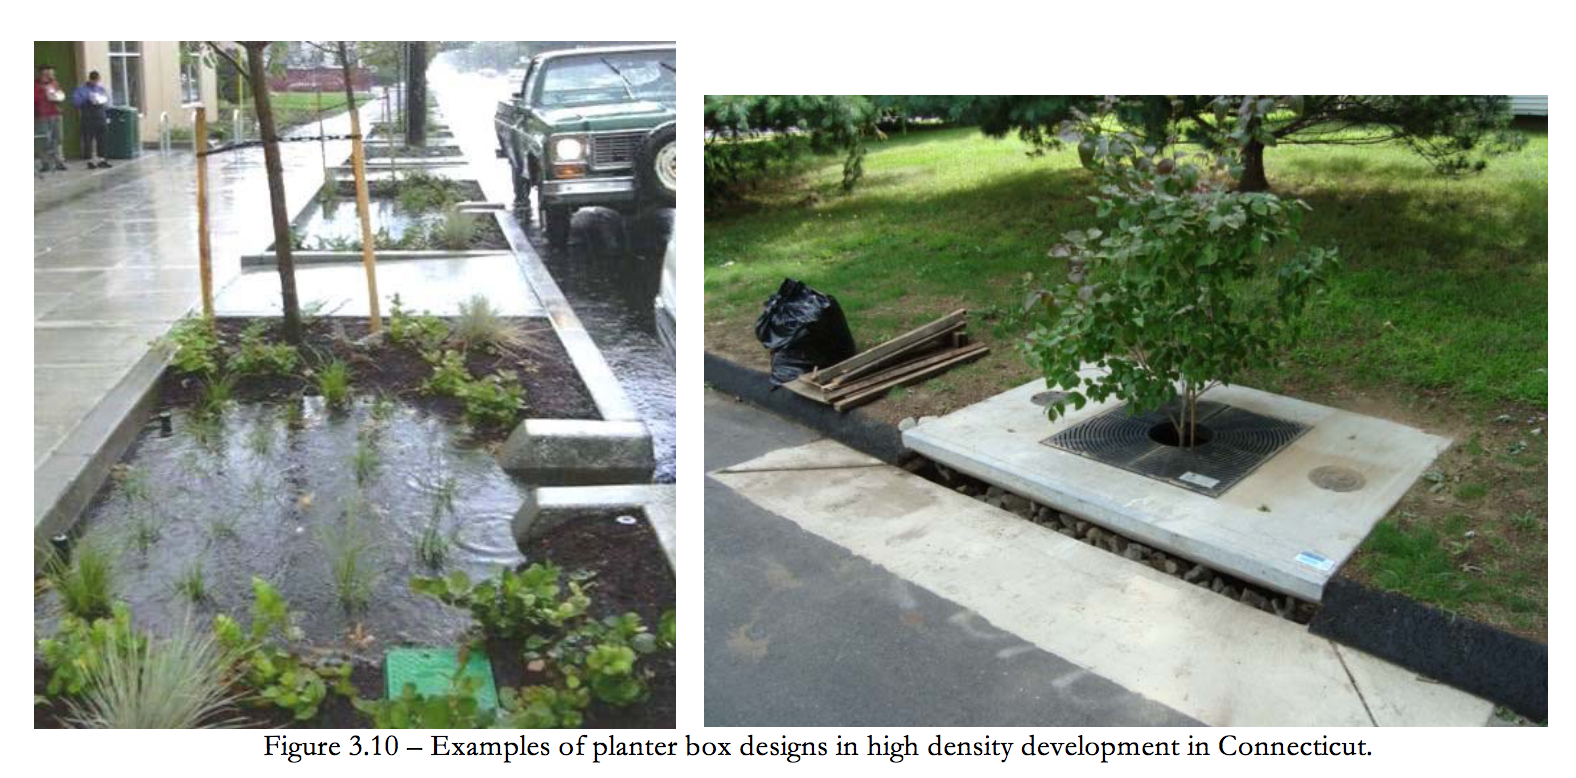 Figure 3-10 Examples of planter box designs in high density development in Connecticut